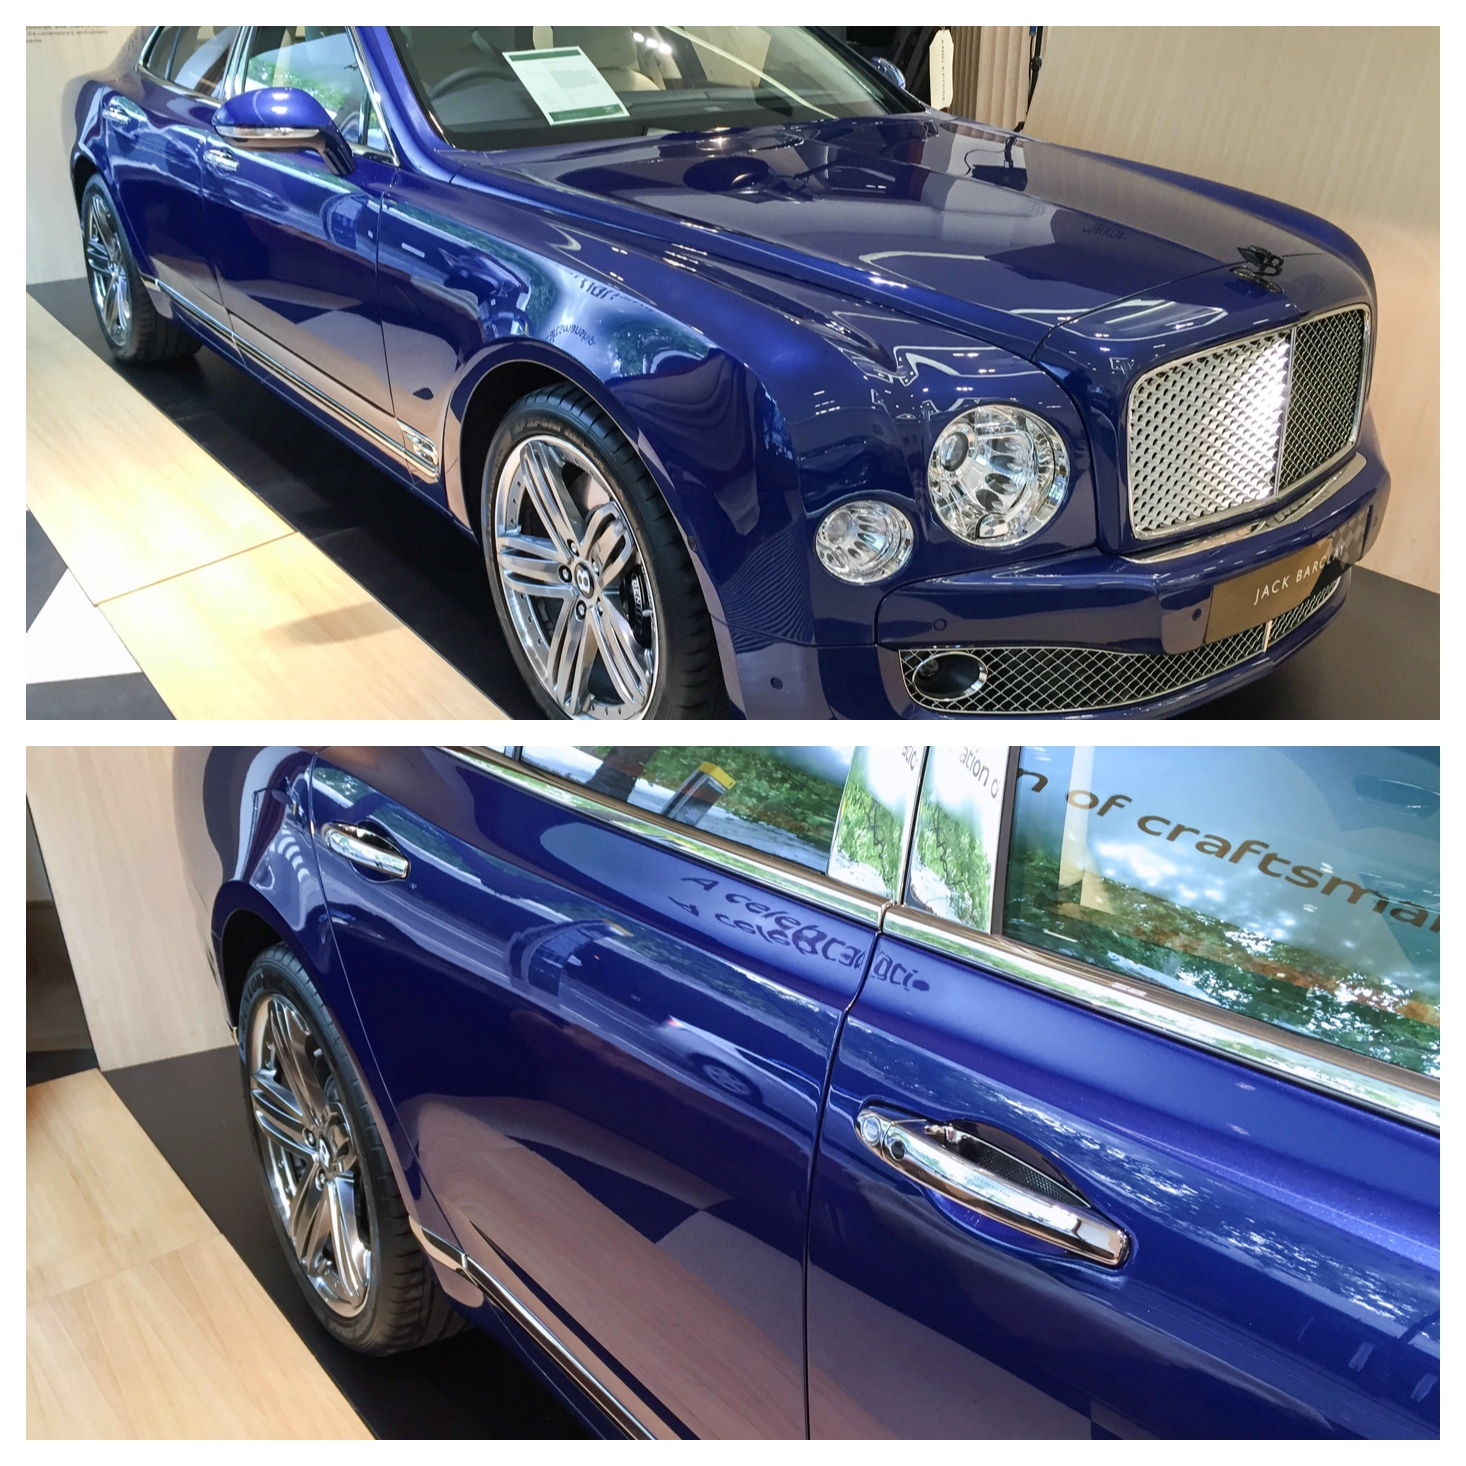 Limited Edition Bentley Mulsanne 95 | Jack Barclay HR Owen, London